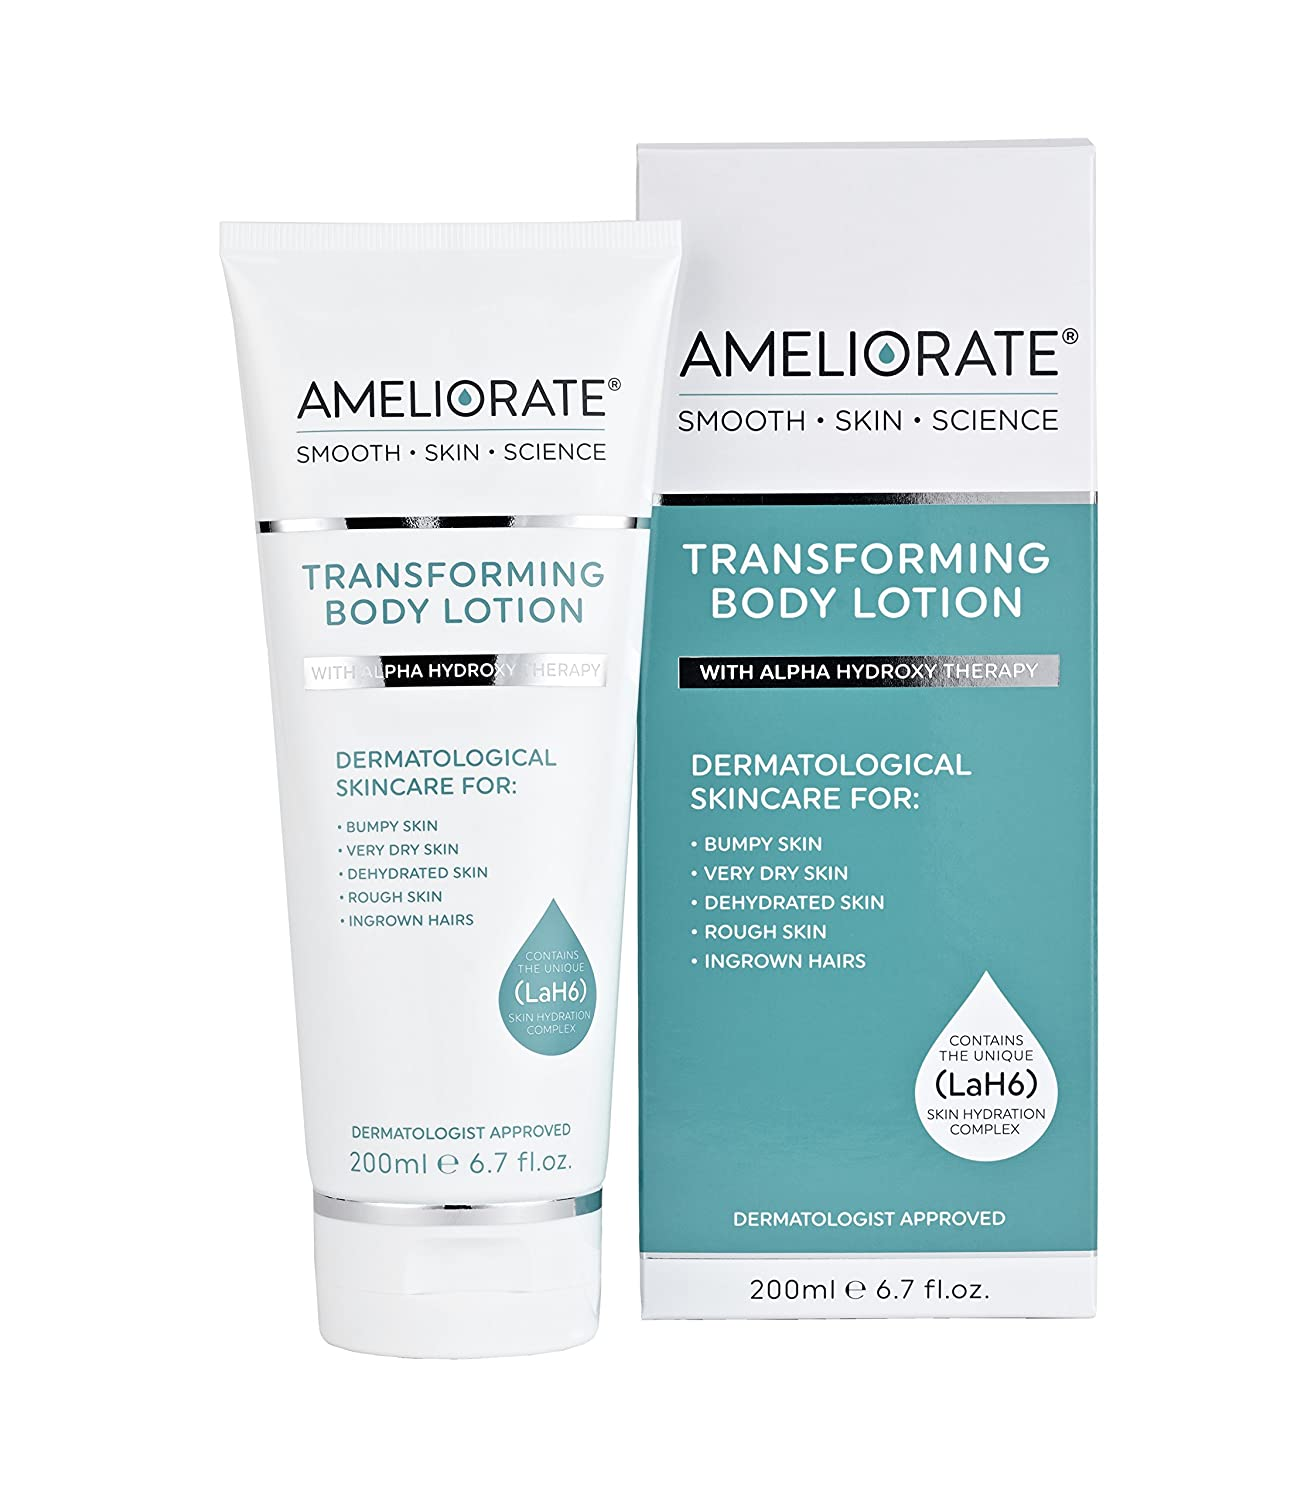 AMELIORATE Transforming Body Lotion 200 ml 05035267022897-01